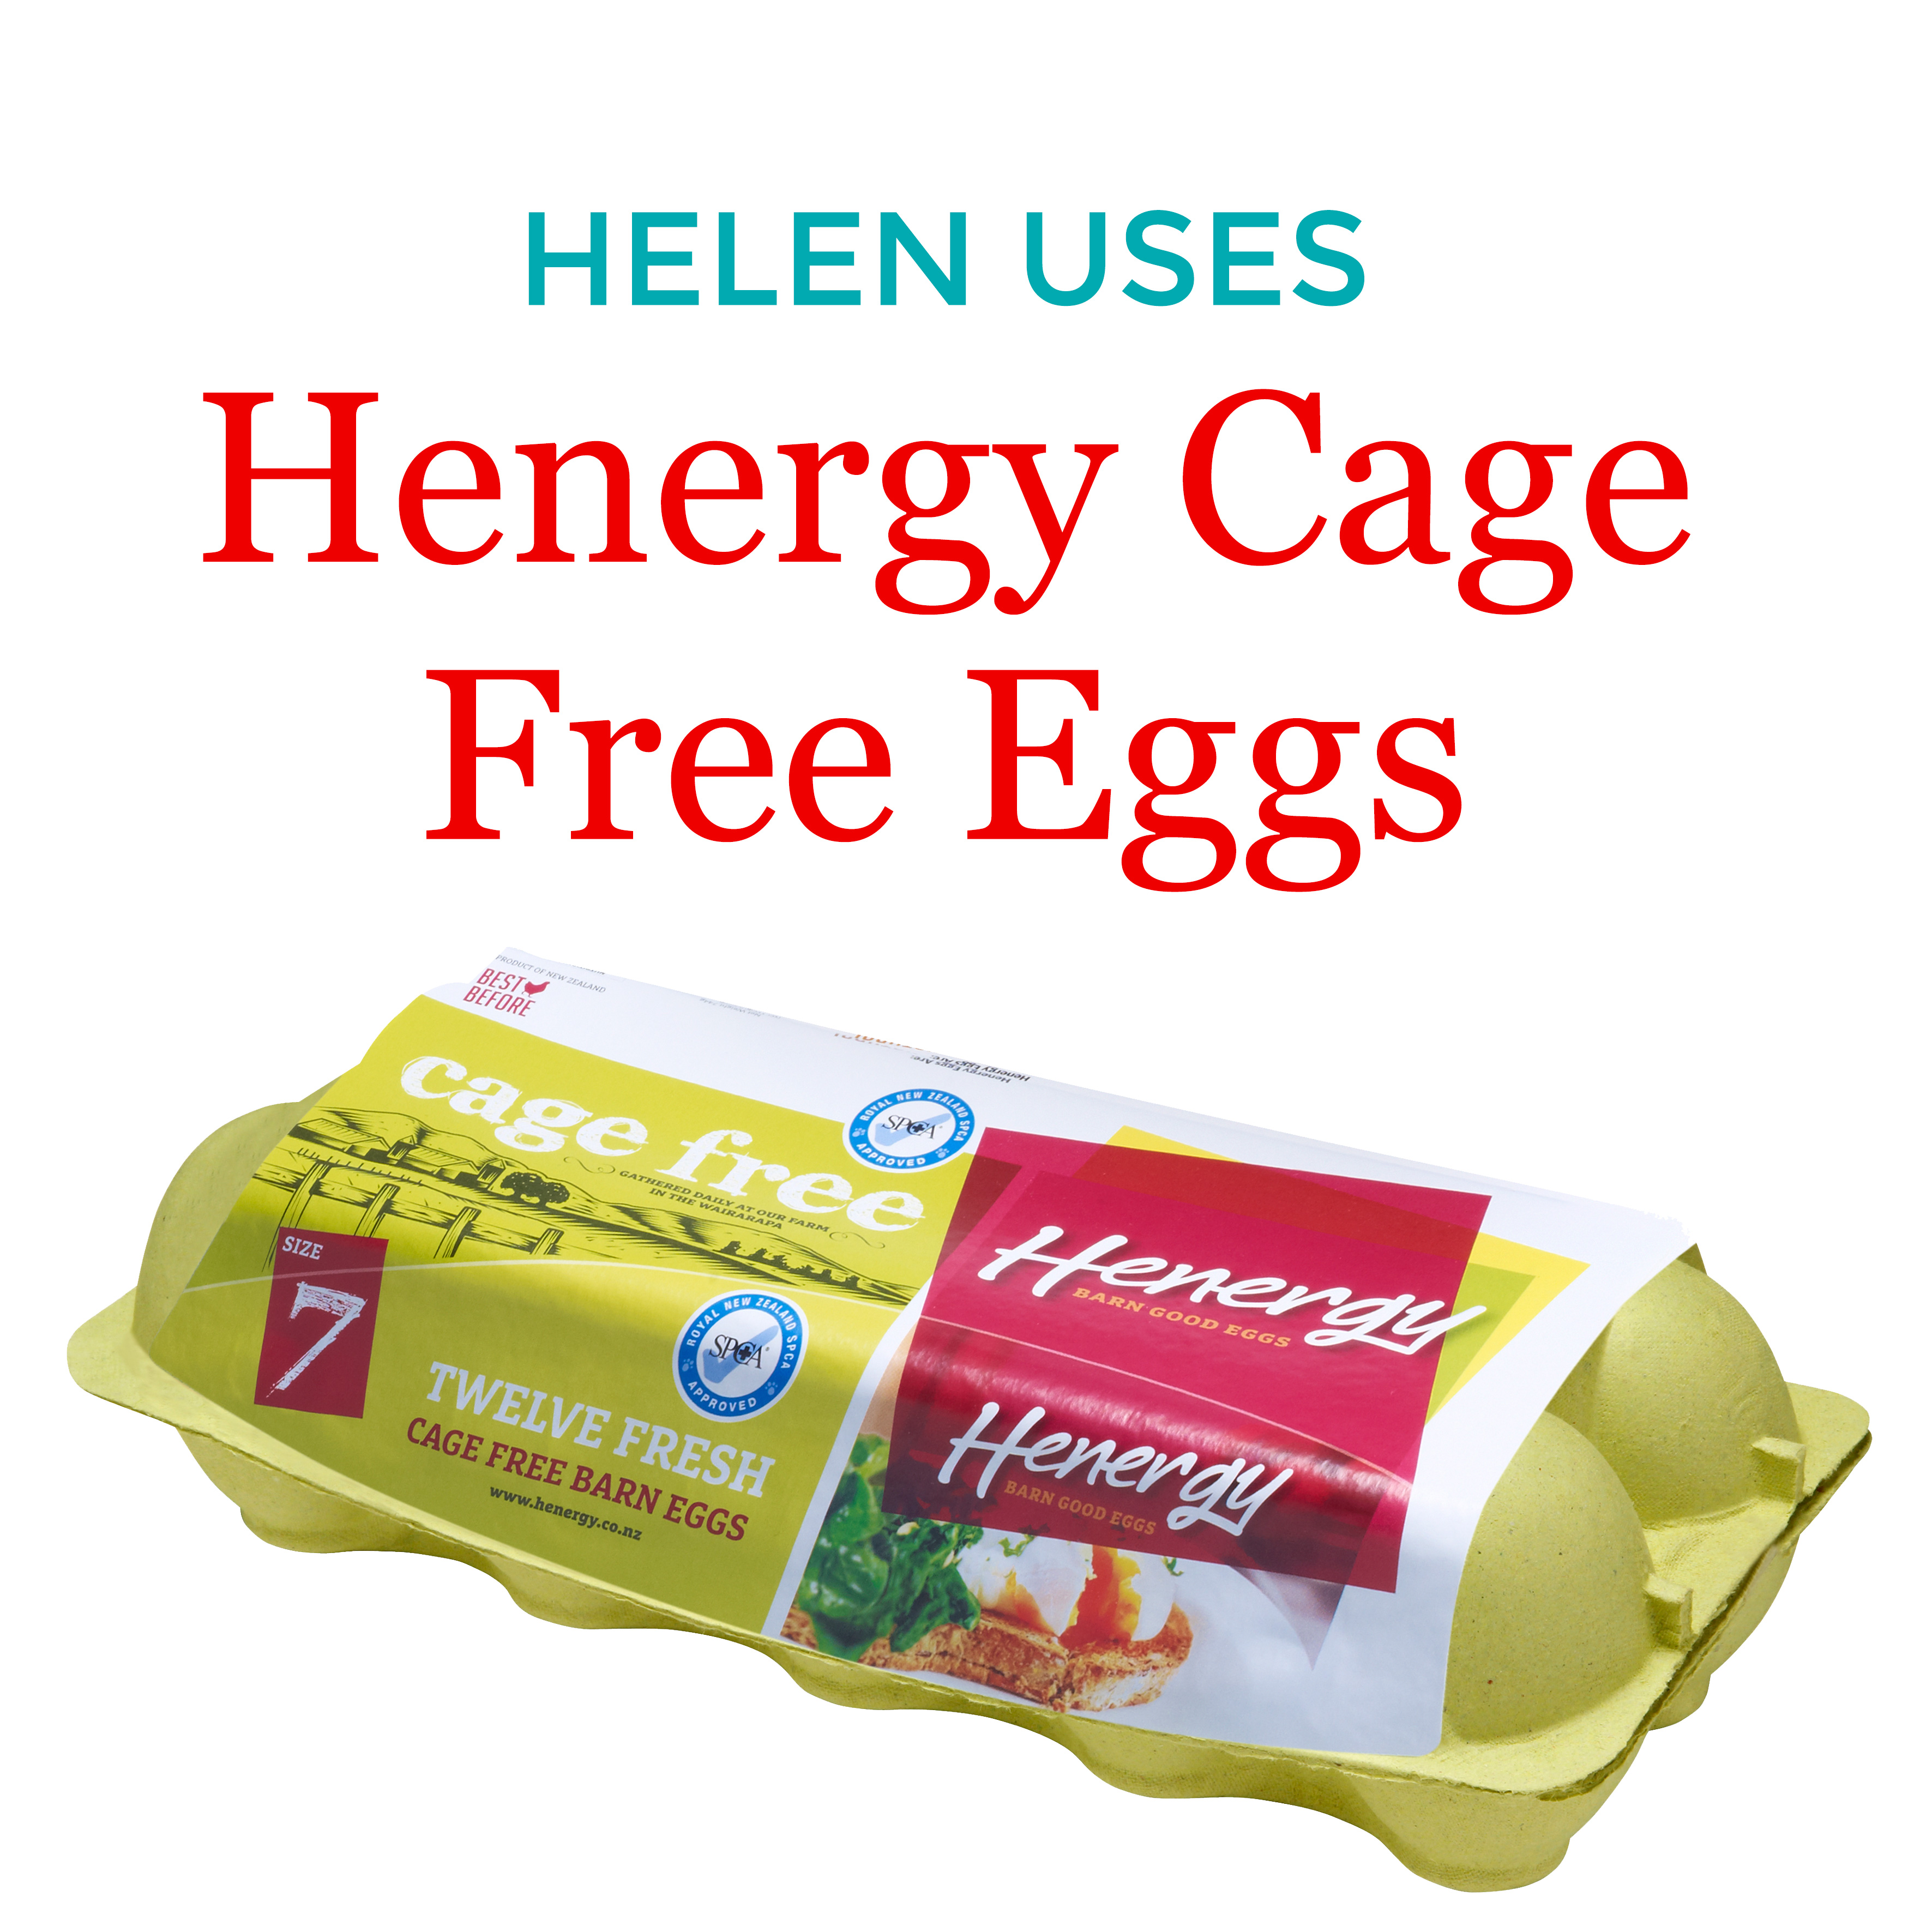 Helen Uses Henergy Cage Free eggs